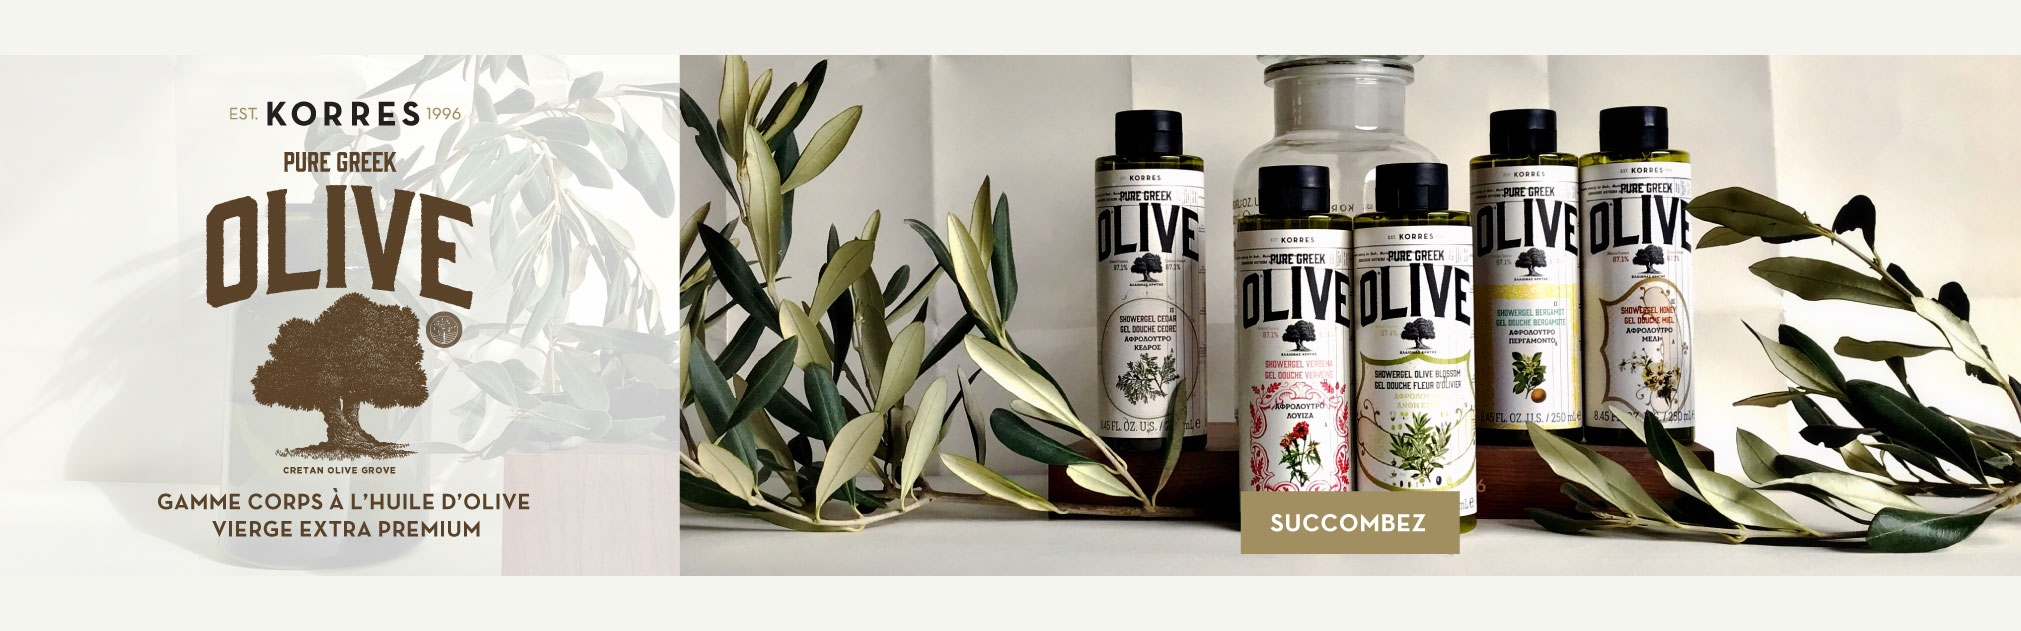 Gamme olive